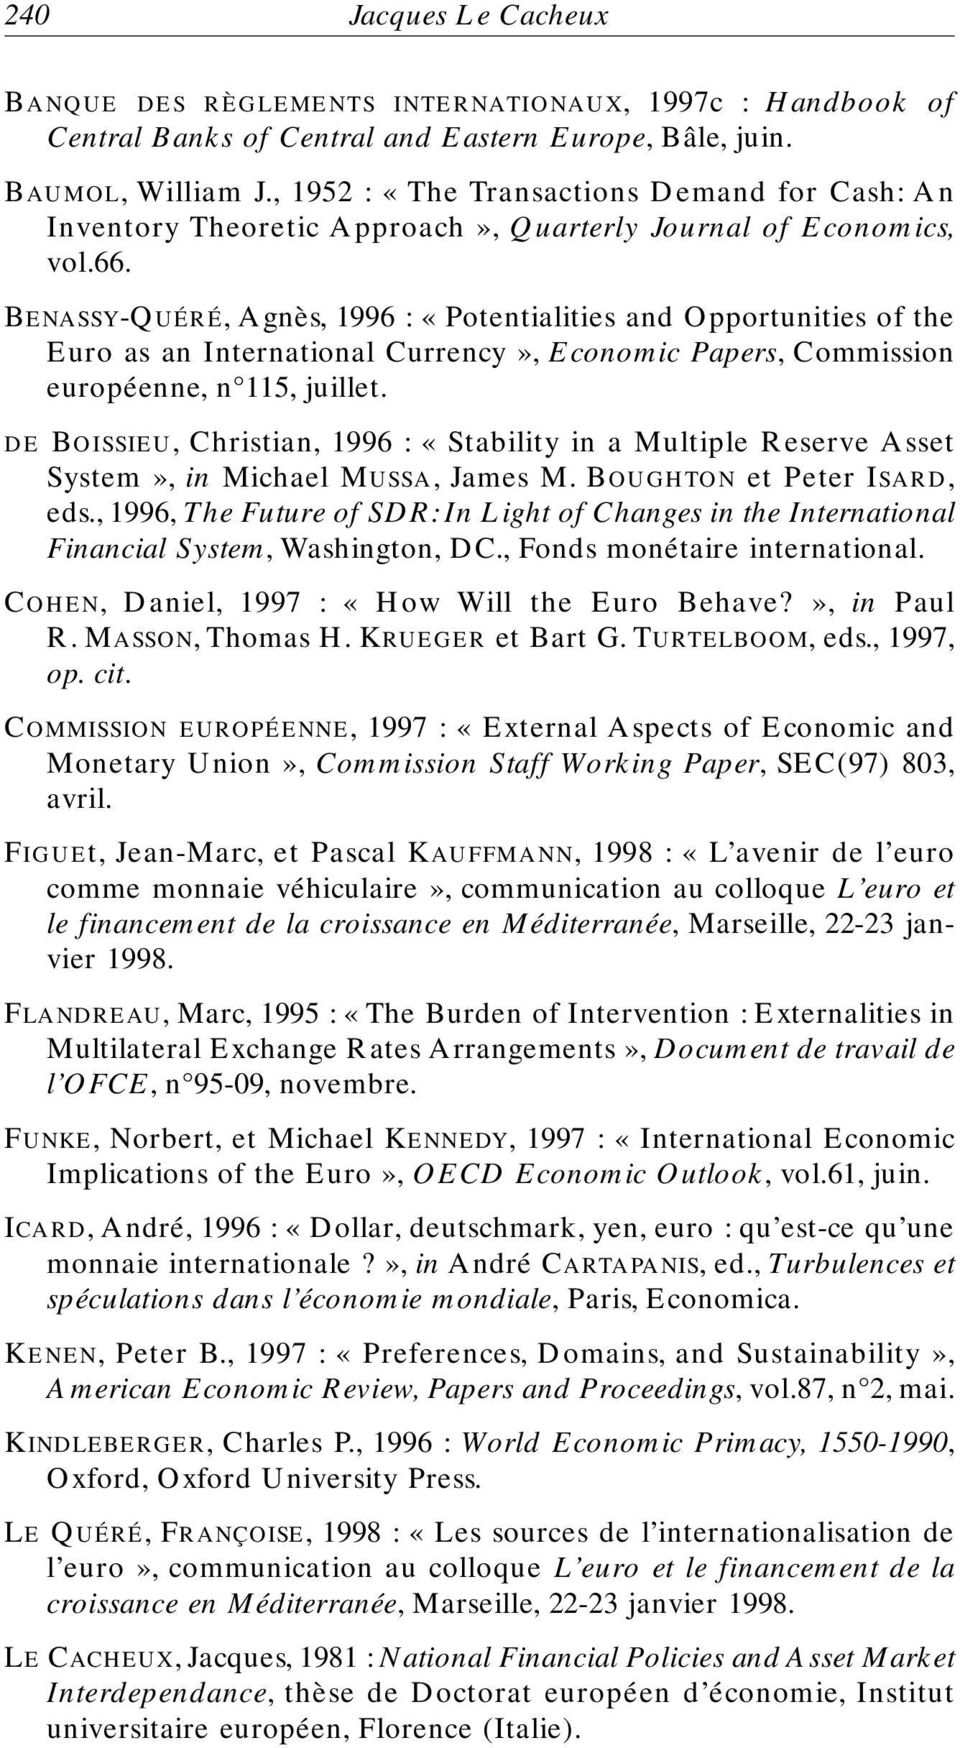 BENASSY-QUÉRÉ, Agnès, 1996 : «Potentialities and Opportunities of the Euro as an International Currency», Economic Papers, Commission européenne, n 115, juillet.